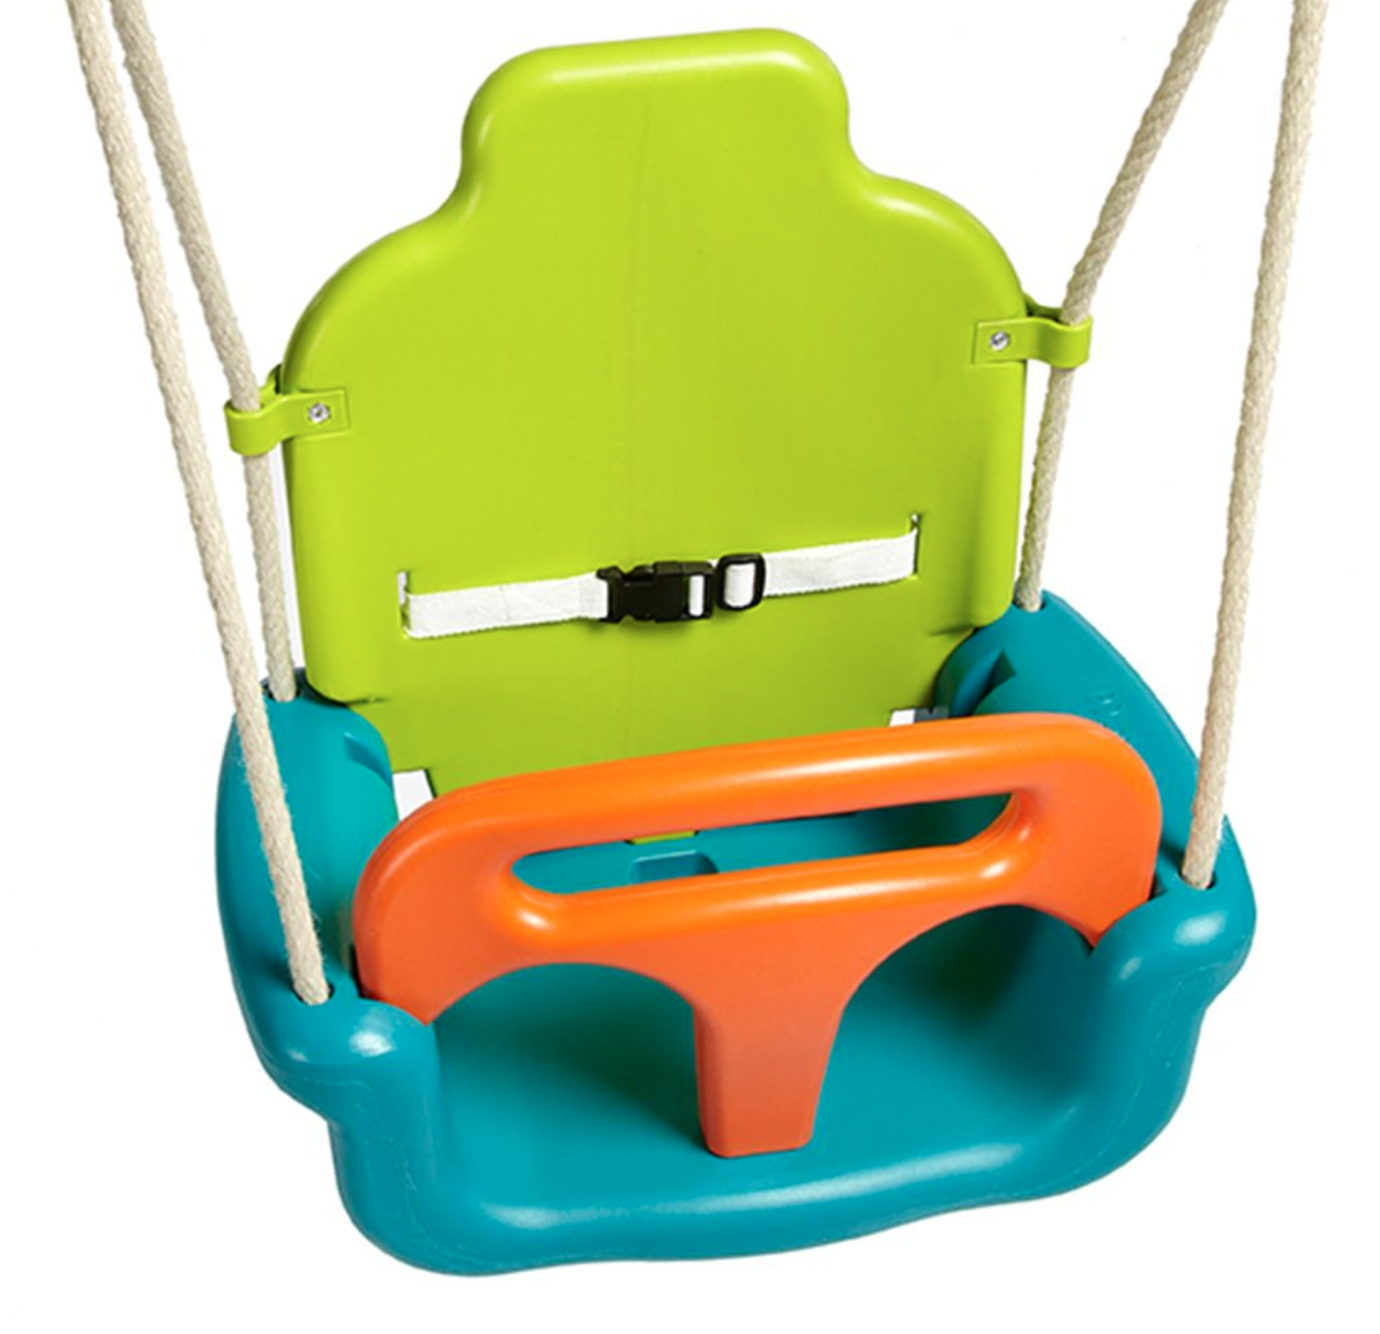 3-in-1 Growing Baby Swing Seat with Lime Hangers